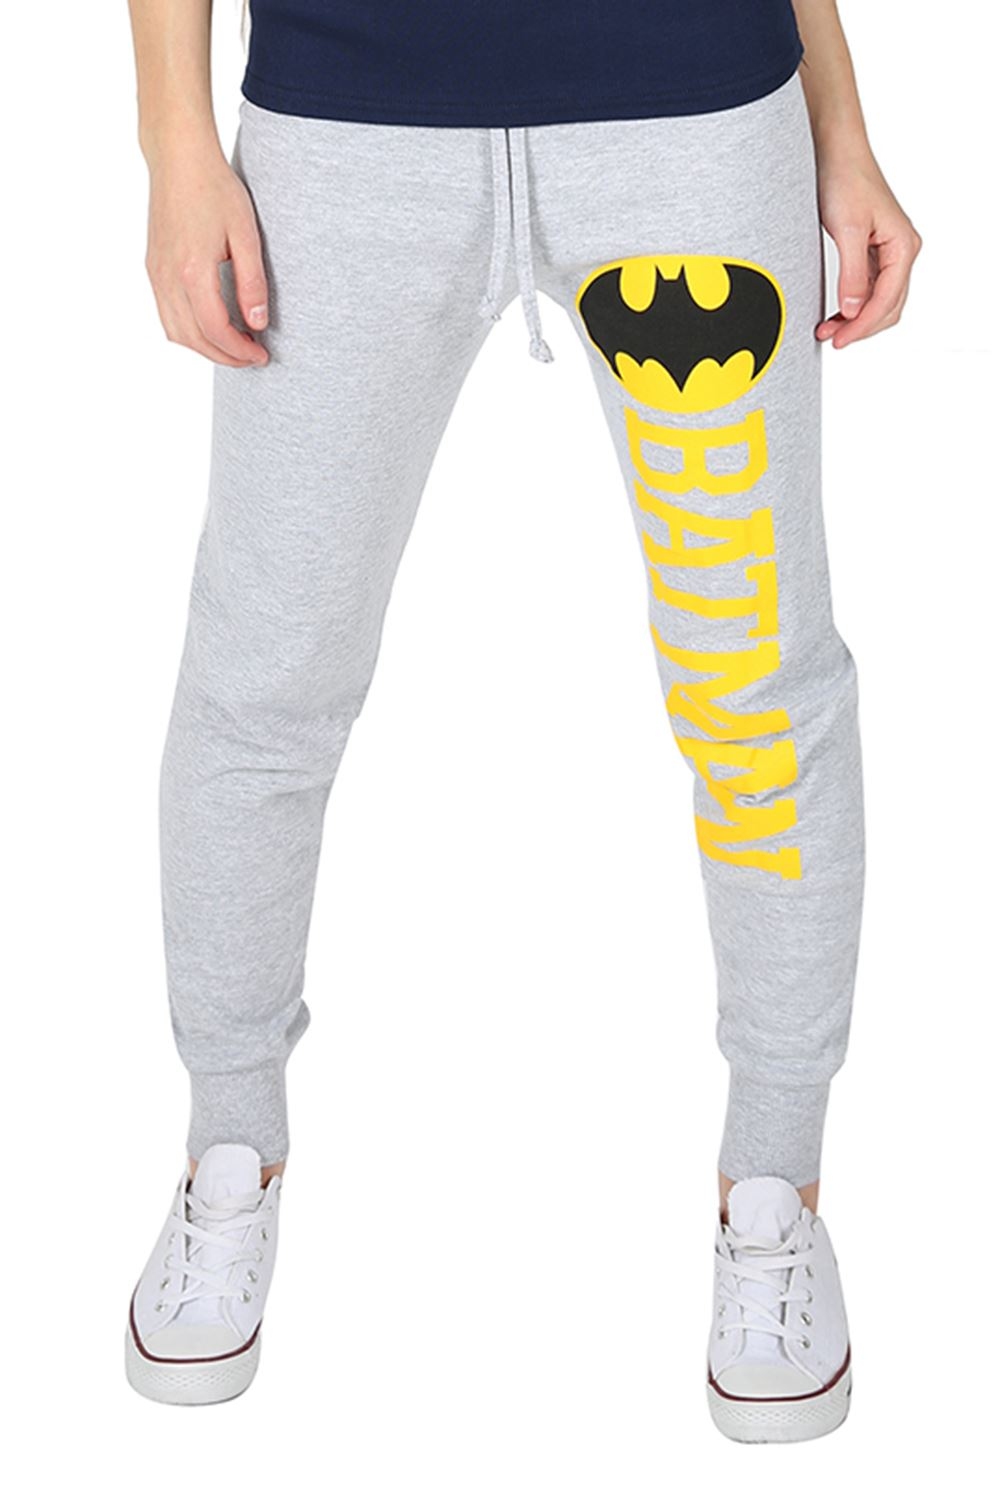 You searched for: batman pants! Etsy is the home to thousands of handmade, vintage, and one-of-a-kind products and gifts related to your search. No matter what you're looking for or where you are in the world, our global marketplace of sellers can help you find unique and affordable options. Let's get started!